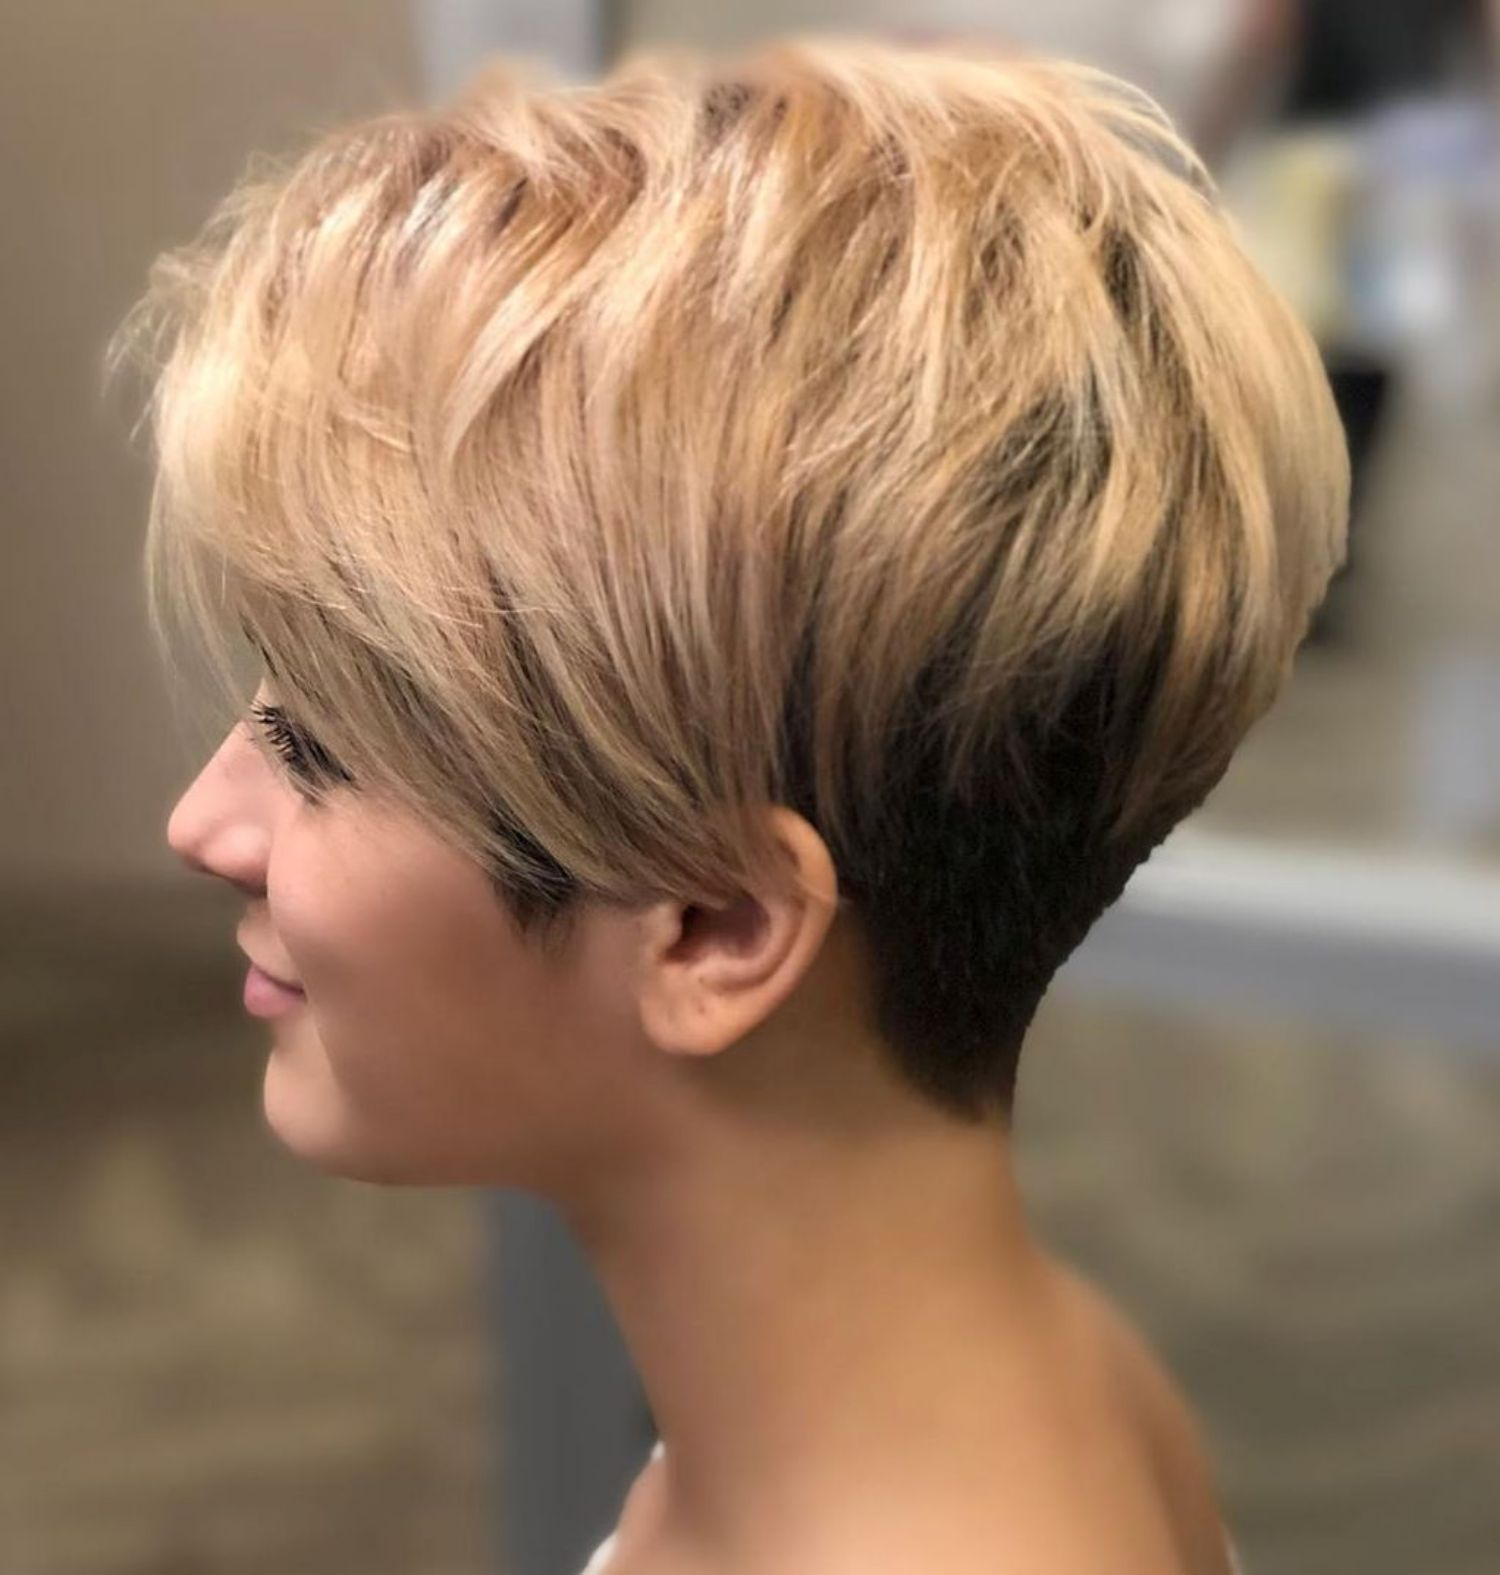 100 Mind Blowing Short Hairstyles For Fine Hair In 2020 Short Hair Styles Hair Styles Haircut For Thick Hair